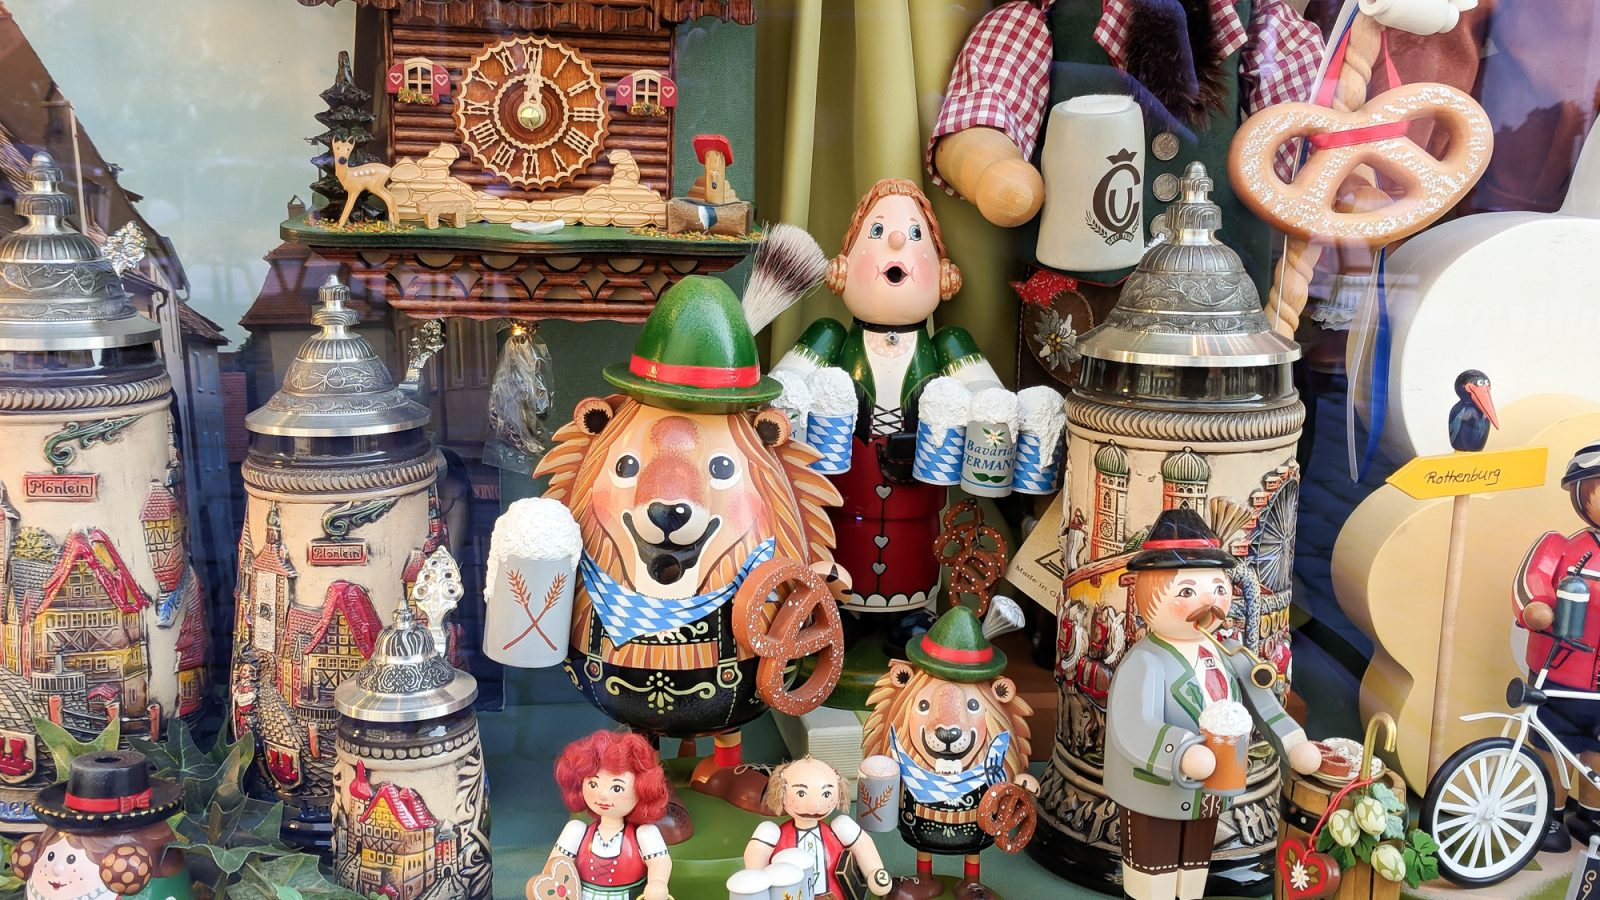 Get to know Germany | Oktoberfest | Where to stay in Germany, what to pack for Germany, and what you need to know about Germany | #timebudgettravel #traveltips #germany #munich #berlin